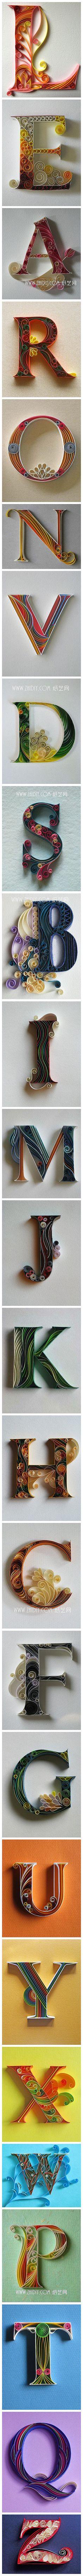 Quilled paper alphabet-I could prob do some of these